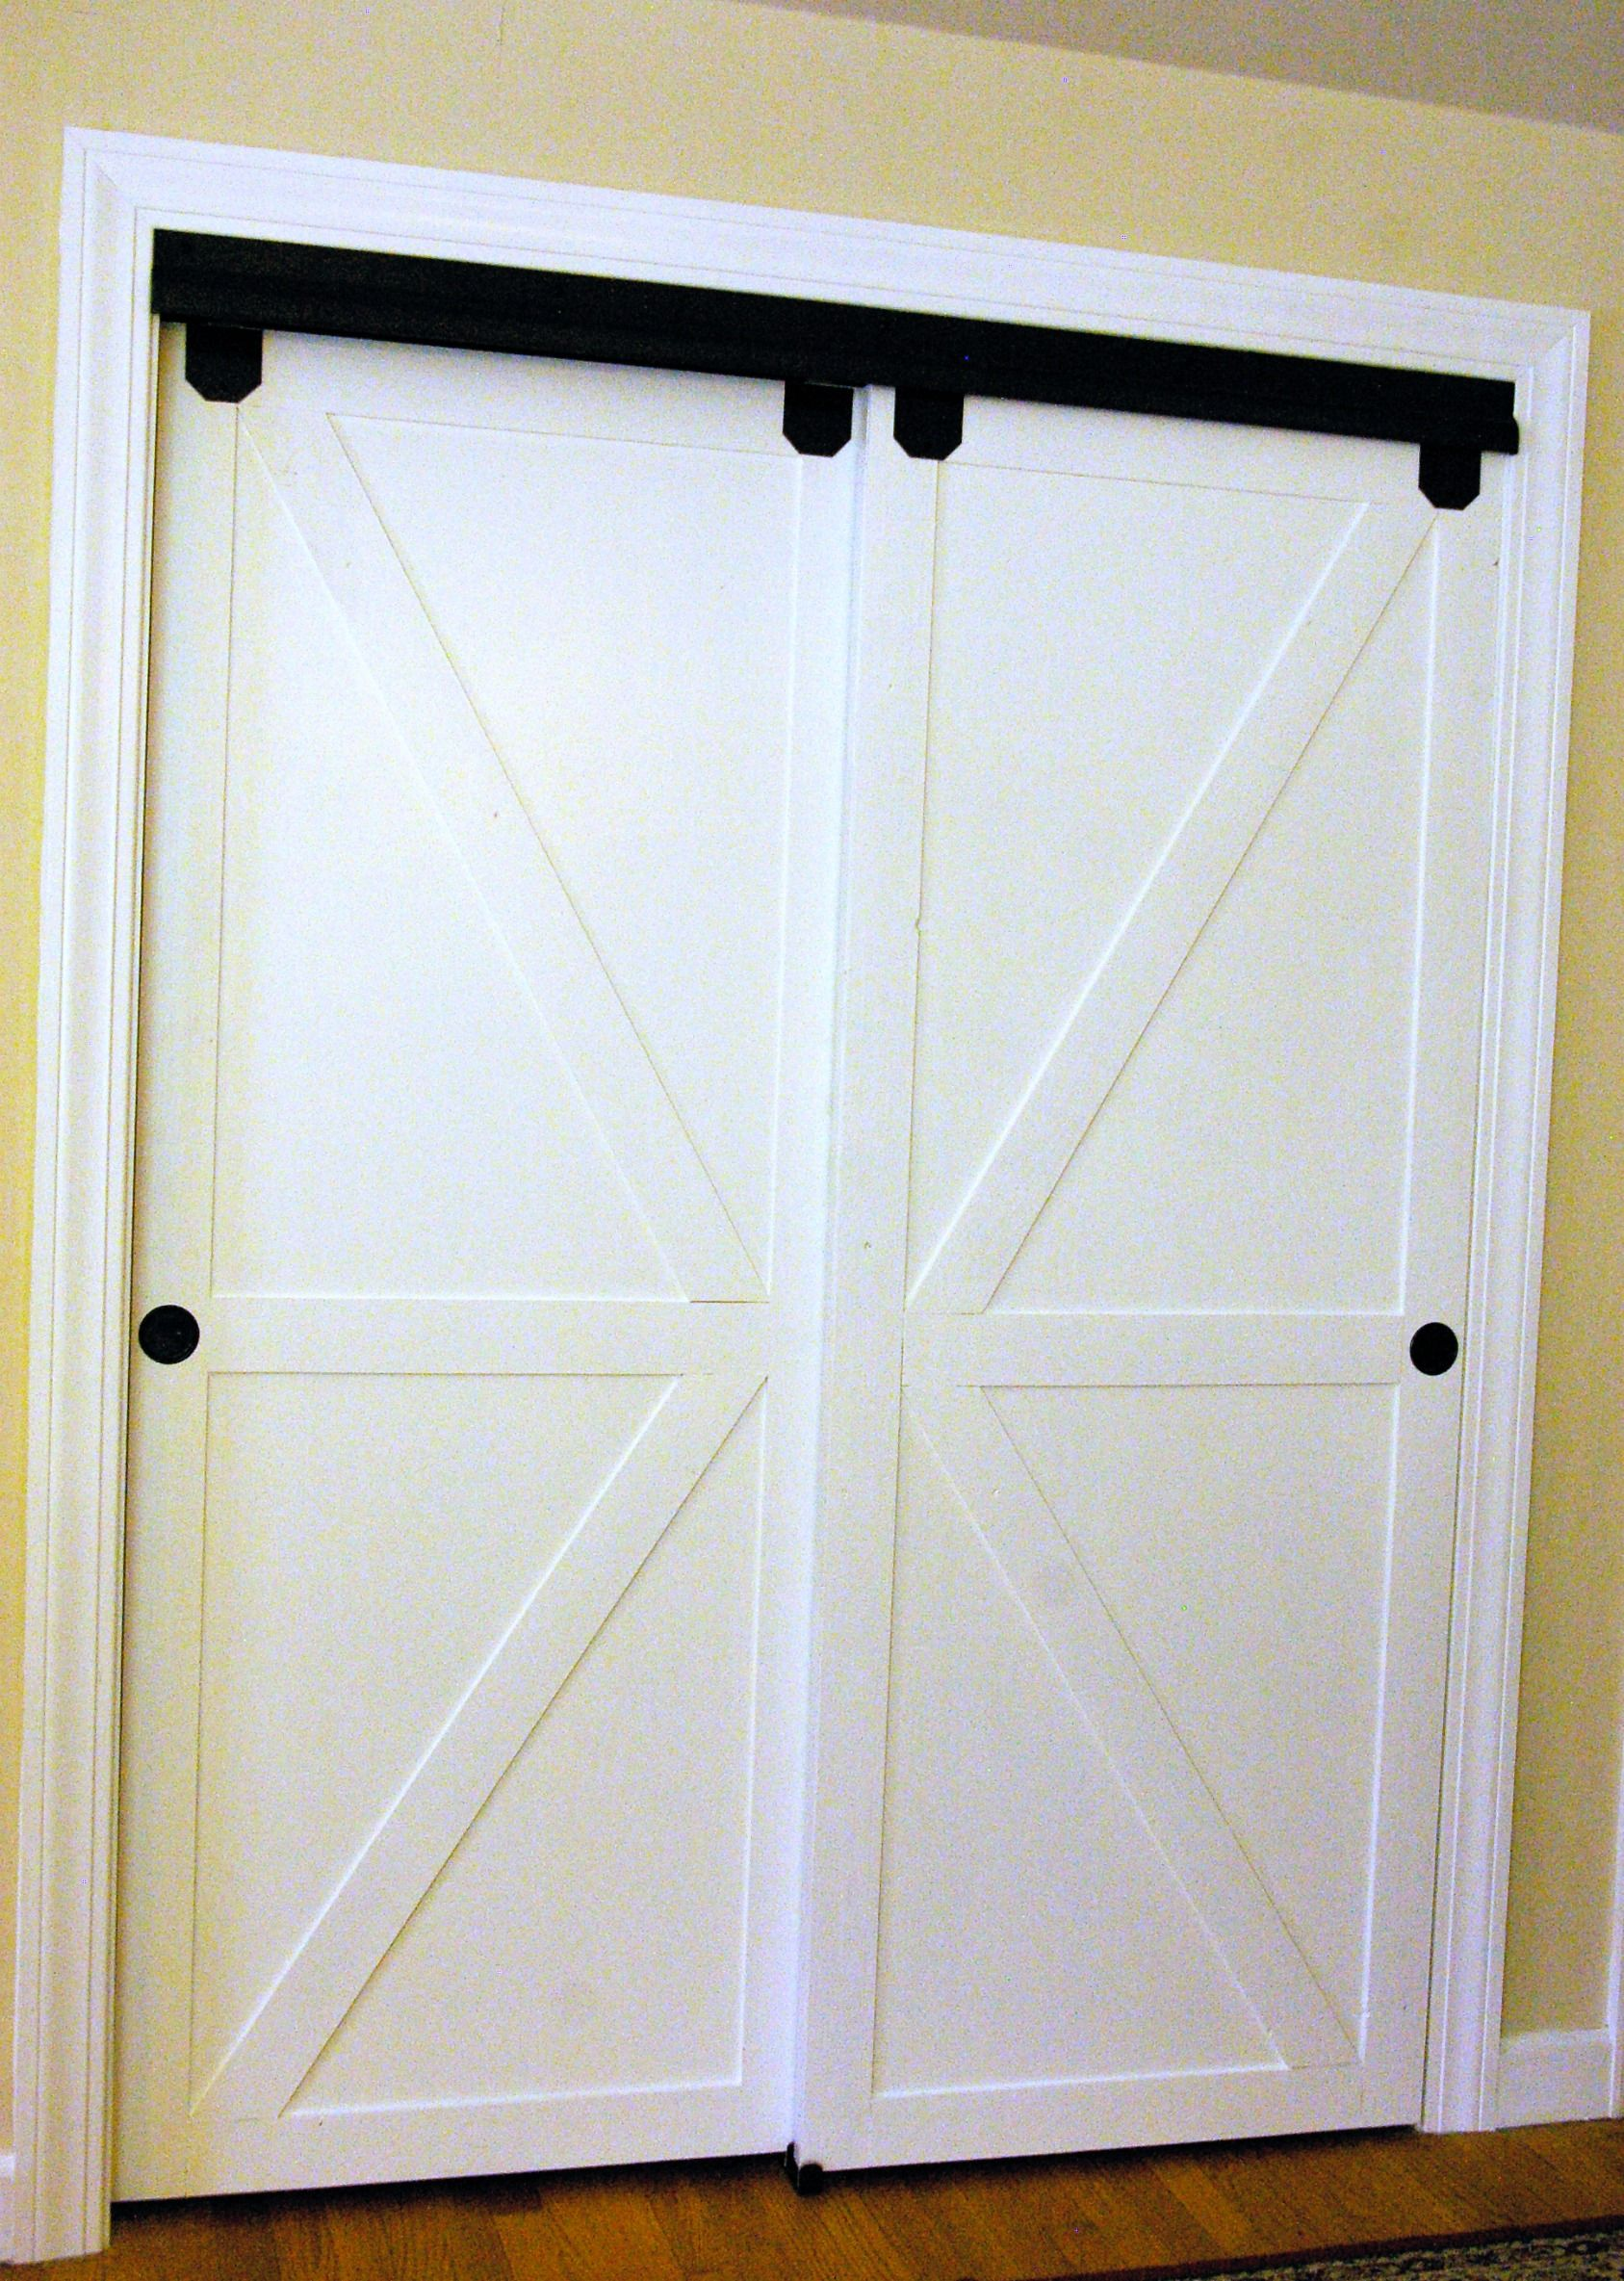 Diy faux barn doors on a sliding bypass closet door 02 for Closet door ideas diy